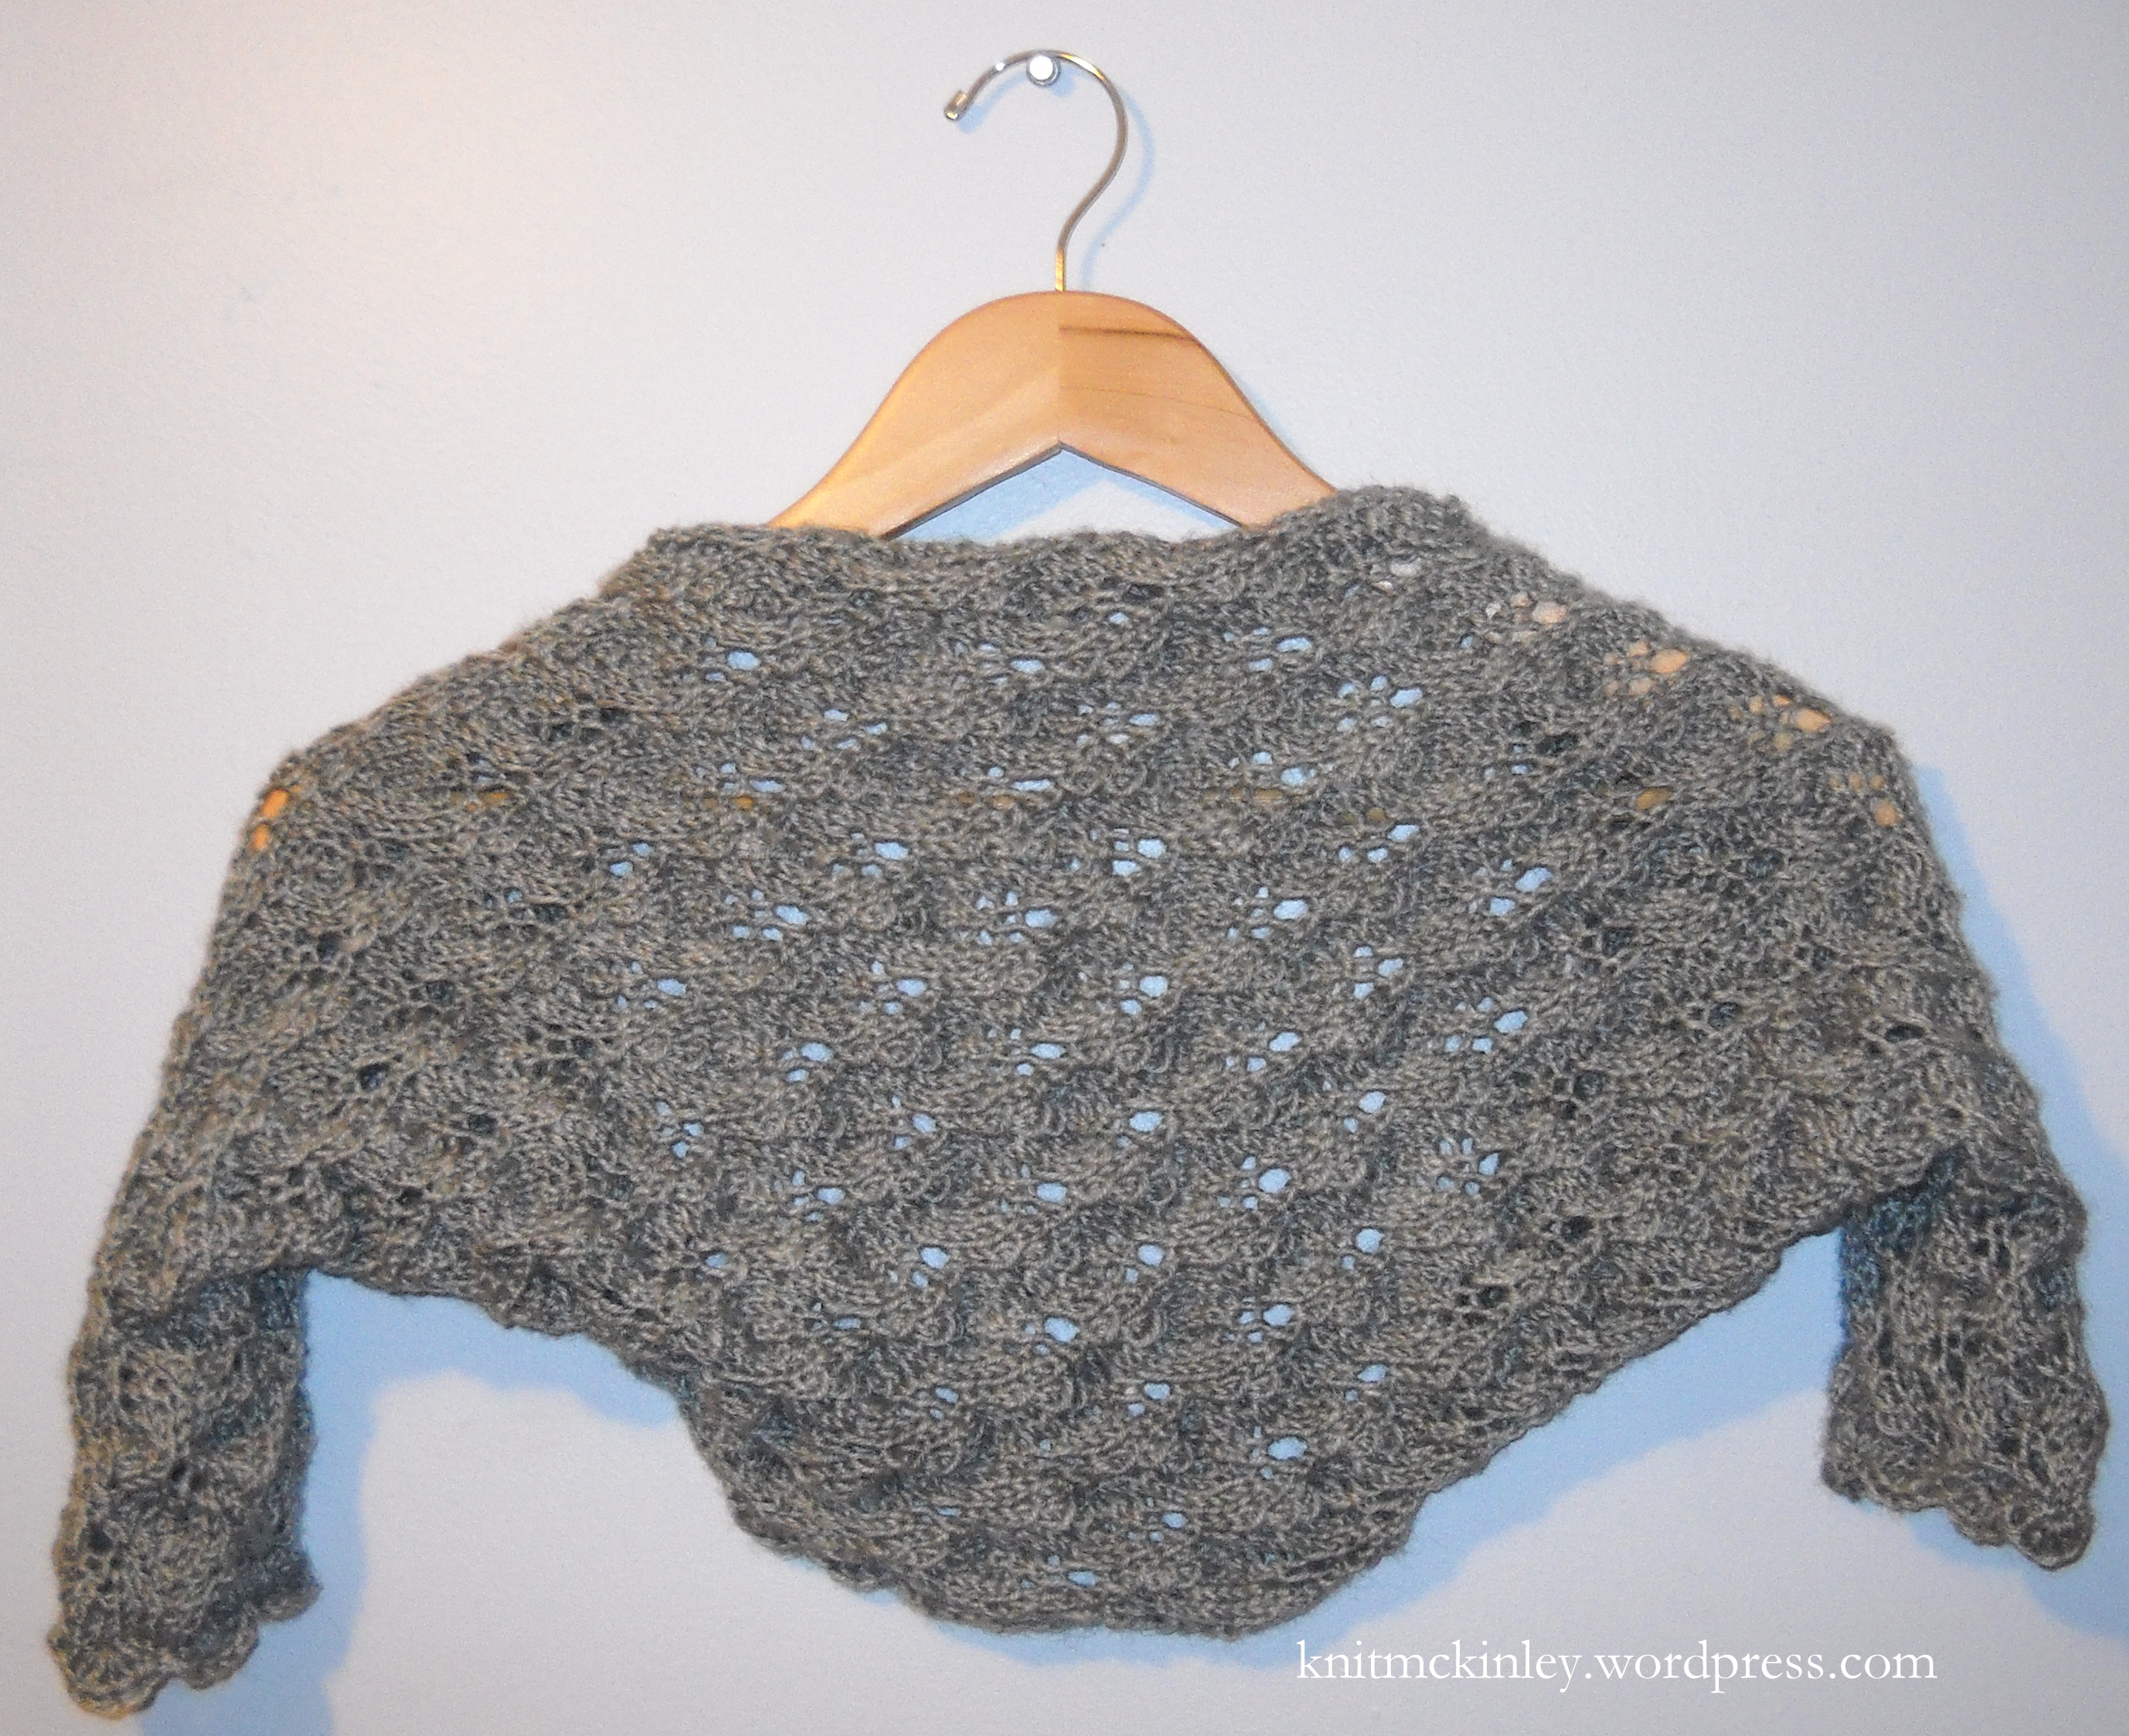 matrimonio bolero – The Knit McKinley